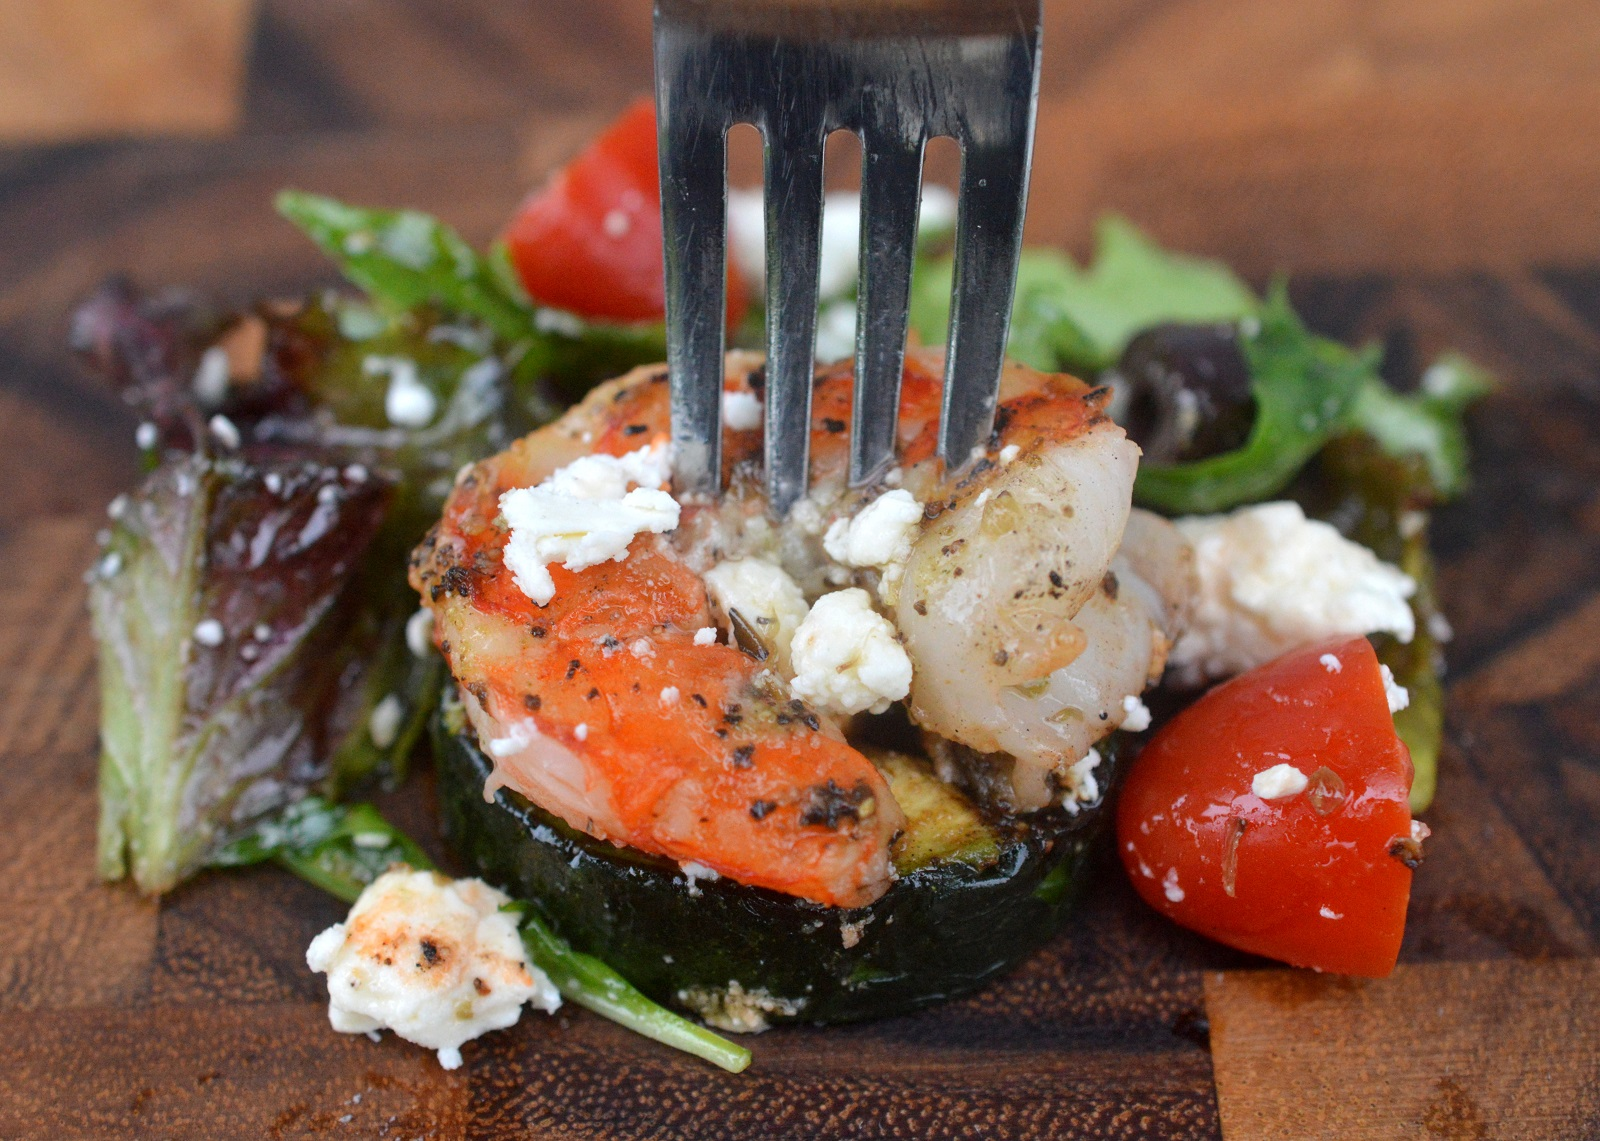 Greek Zucchini, SGrilled Shrimp & Feta Cheese Salad